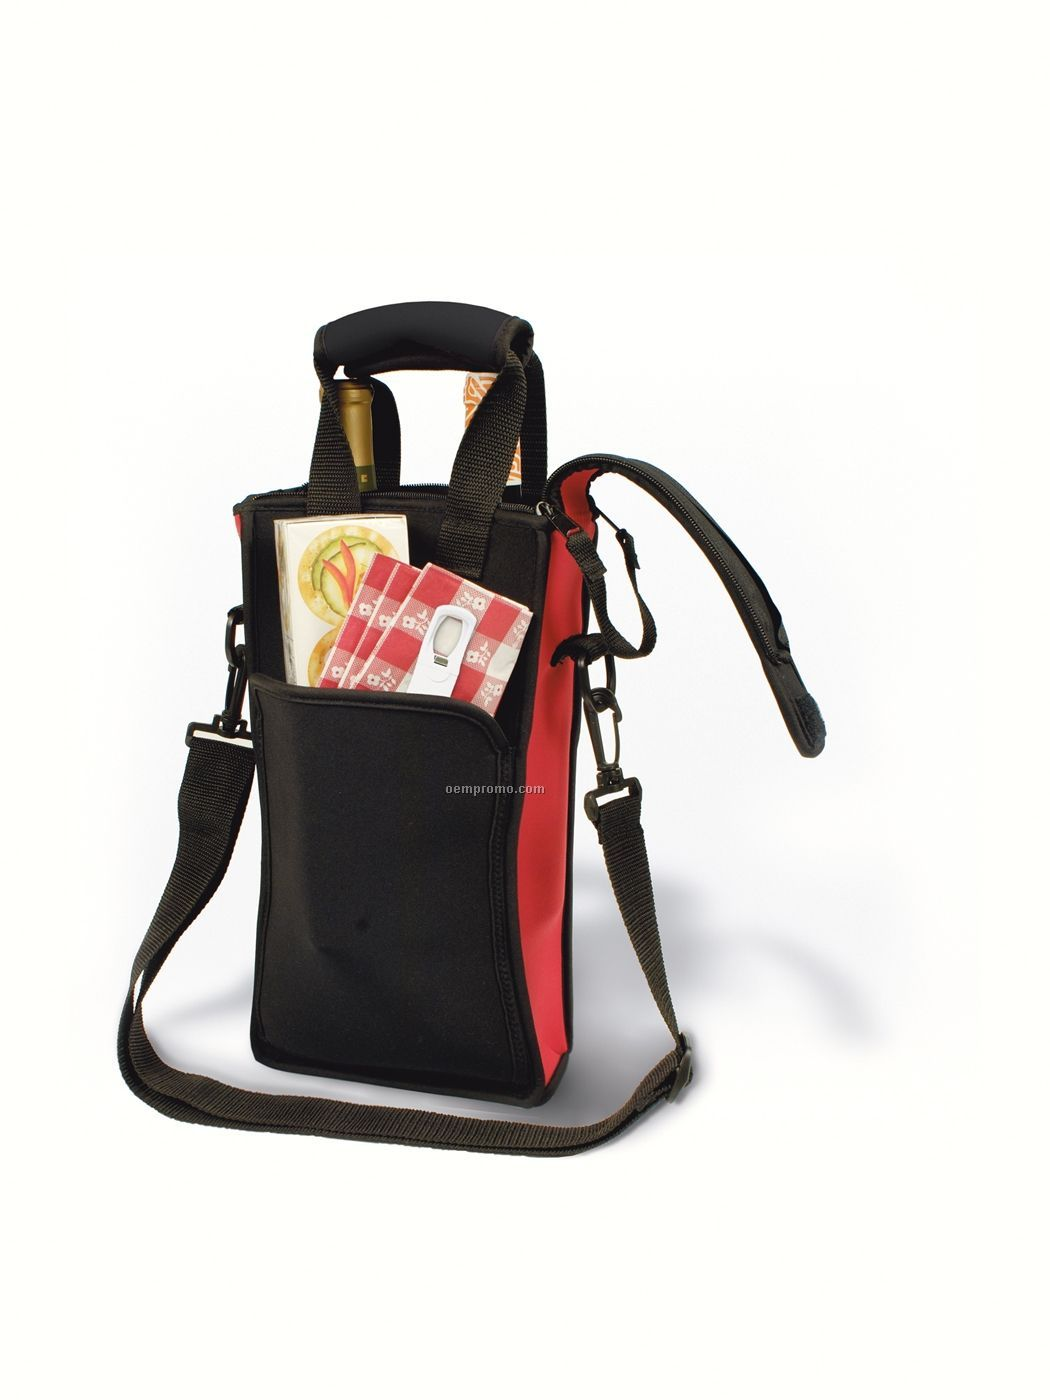 Zip-n-go Picnic Neoprene 2 Bottle Wine Bag With Traveler`s Corkscrew- Bulk